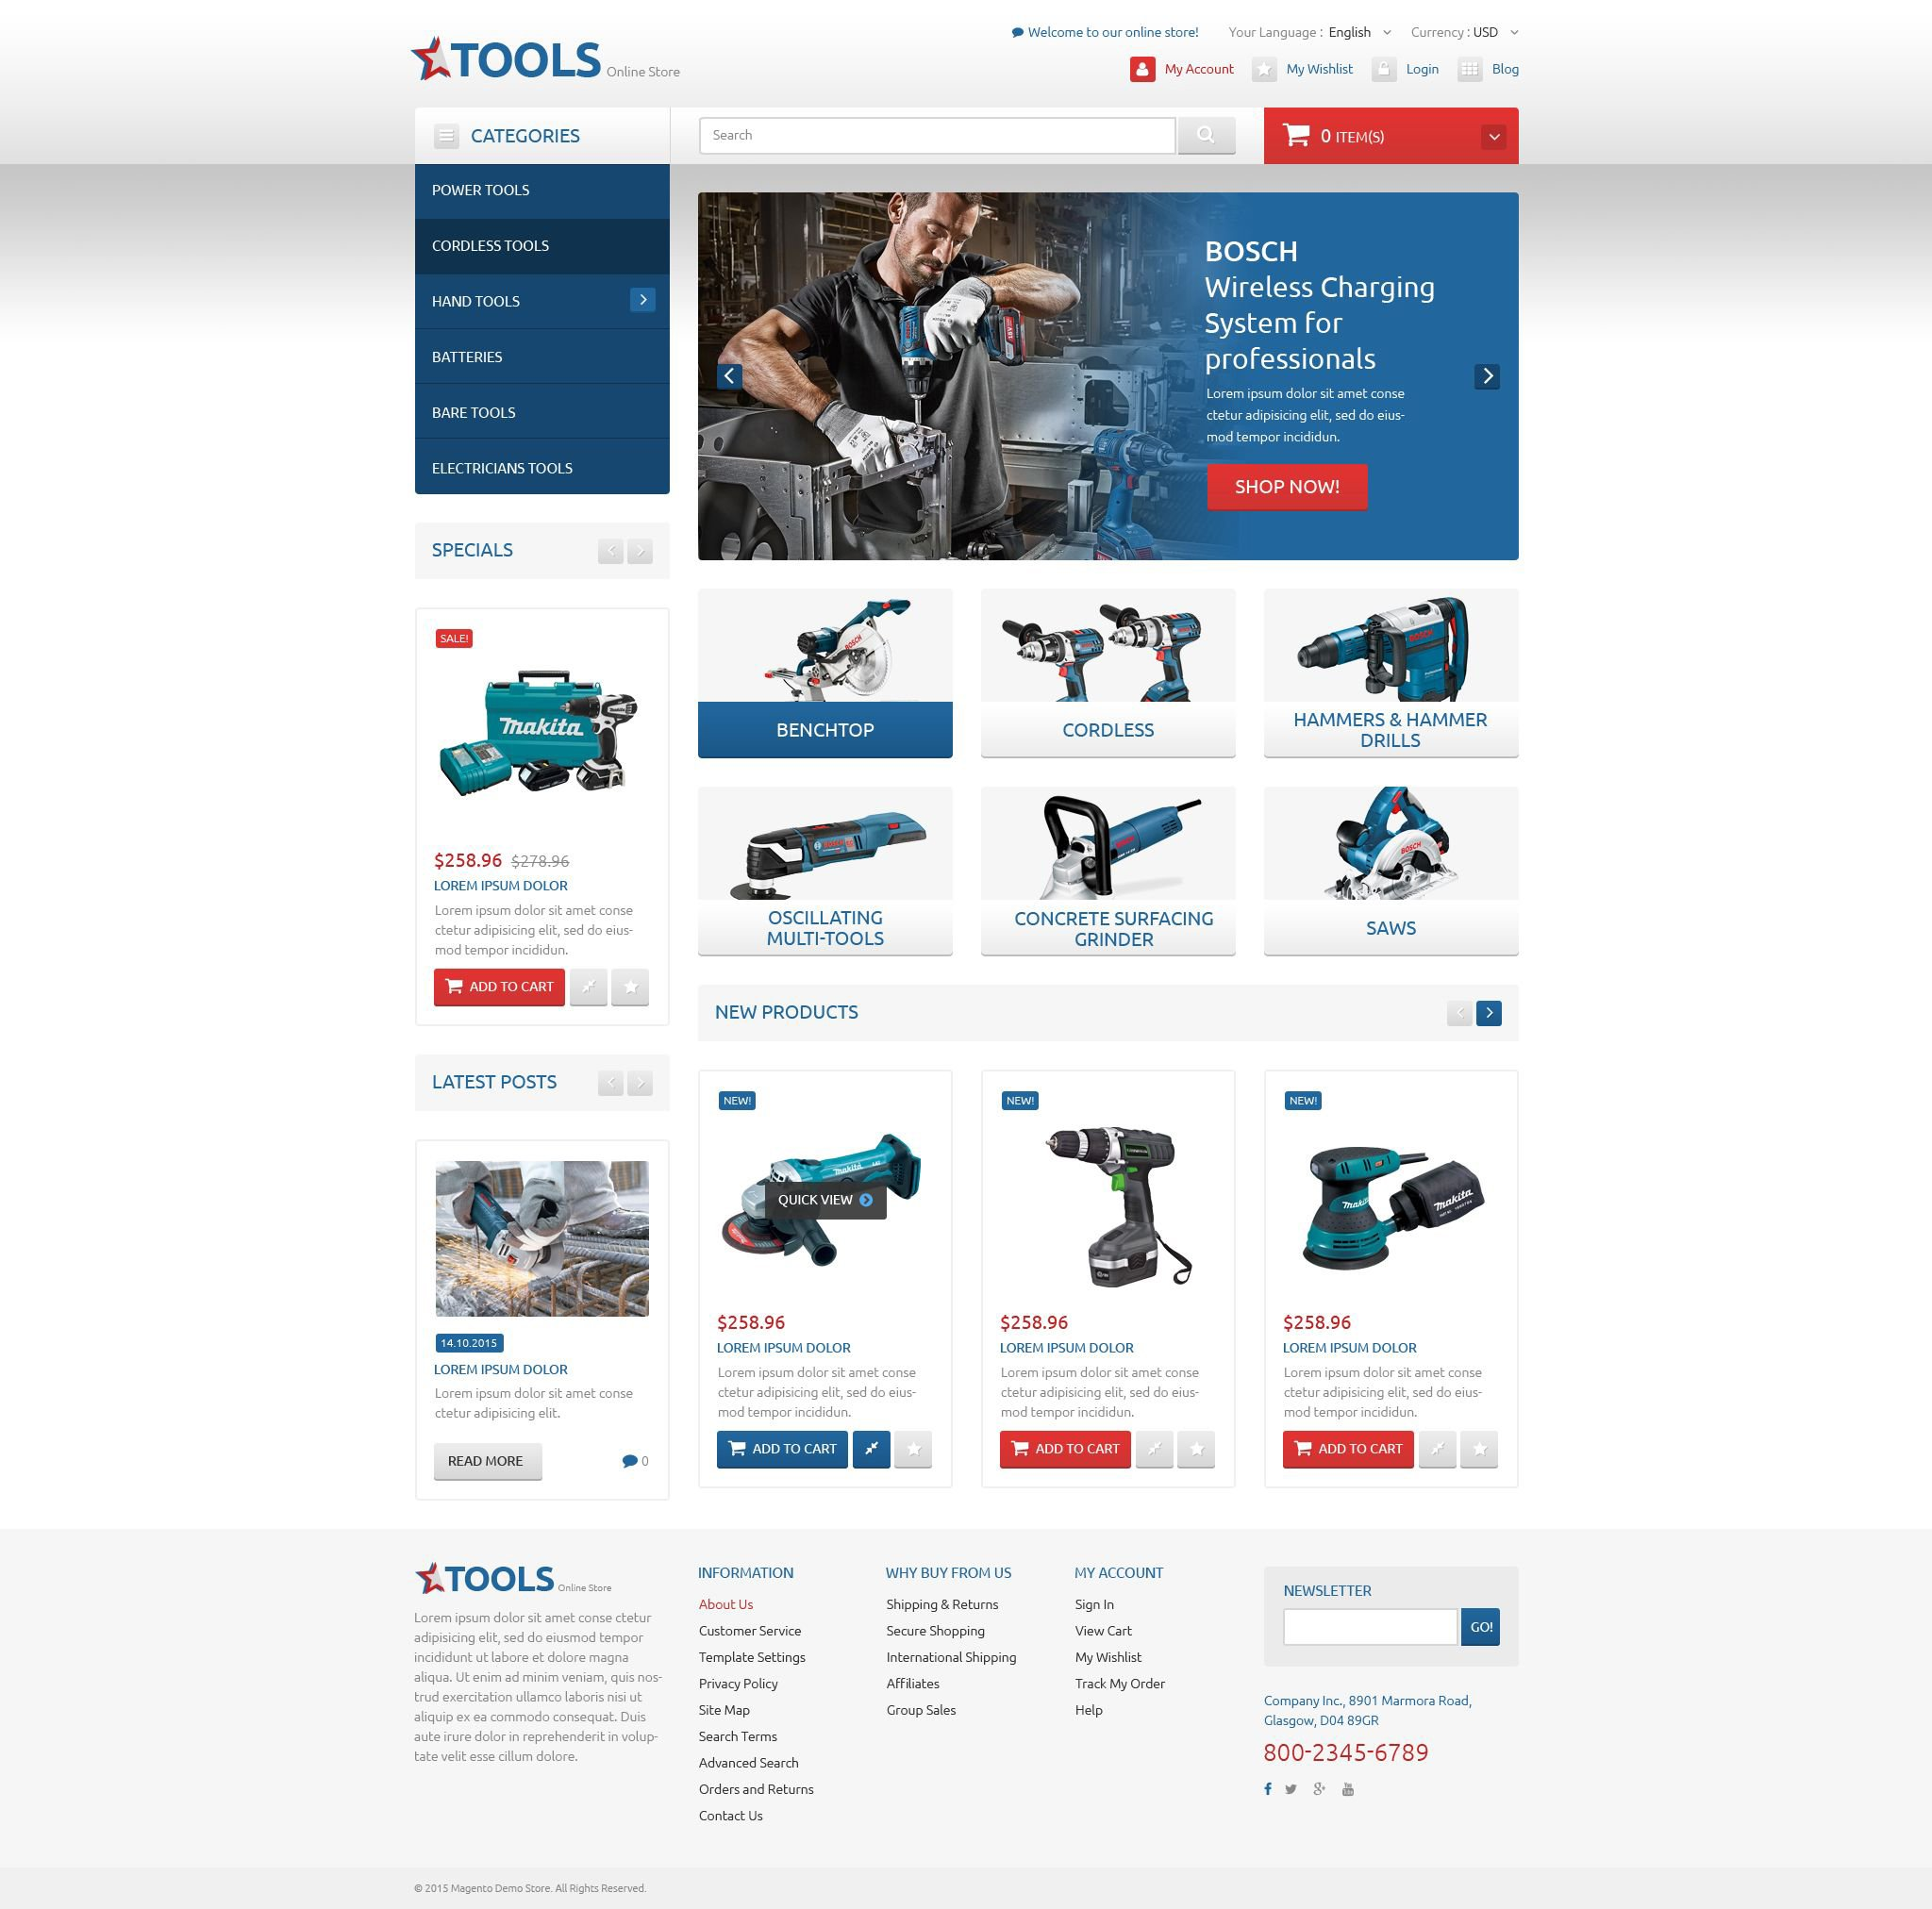 The Tools Online Store Magento Design 53458, one of the best Magento themes of its kind (most popular, tools & equipment), also known as tools online store Magento template, purchase Magento template, industrial Magento template, special accessories Magento template, products Magento template, power Magento template, profile Magento template, standard Magento template, drill Magento template, lawn-mower Magento template, gardening Magento template, motor Magento template, master Magento template, cordless Magento template, air Magento template, power Magento template, tool Magento template, electric pliers Magento template, advice dealership dealer Magento template, repair Magento template, rent Magento template, cutting Magento template, clamps Magento template, automotive Magento template, remover Magento template, puller and related with tools online store, purchase, industrial, special accessories, products, power, profile, standard, drill, lawn-mower, gardening, motor, master, cordless, air, power, tool, electric pliers, advice dealership dealer, repair, rent, cutting, clamps, automotive, remover, puller, etc.